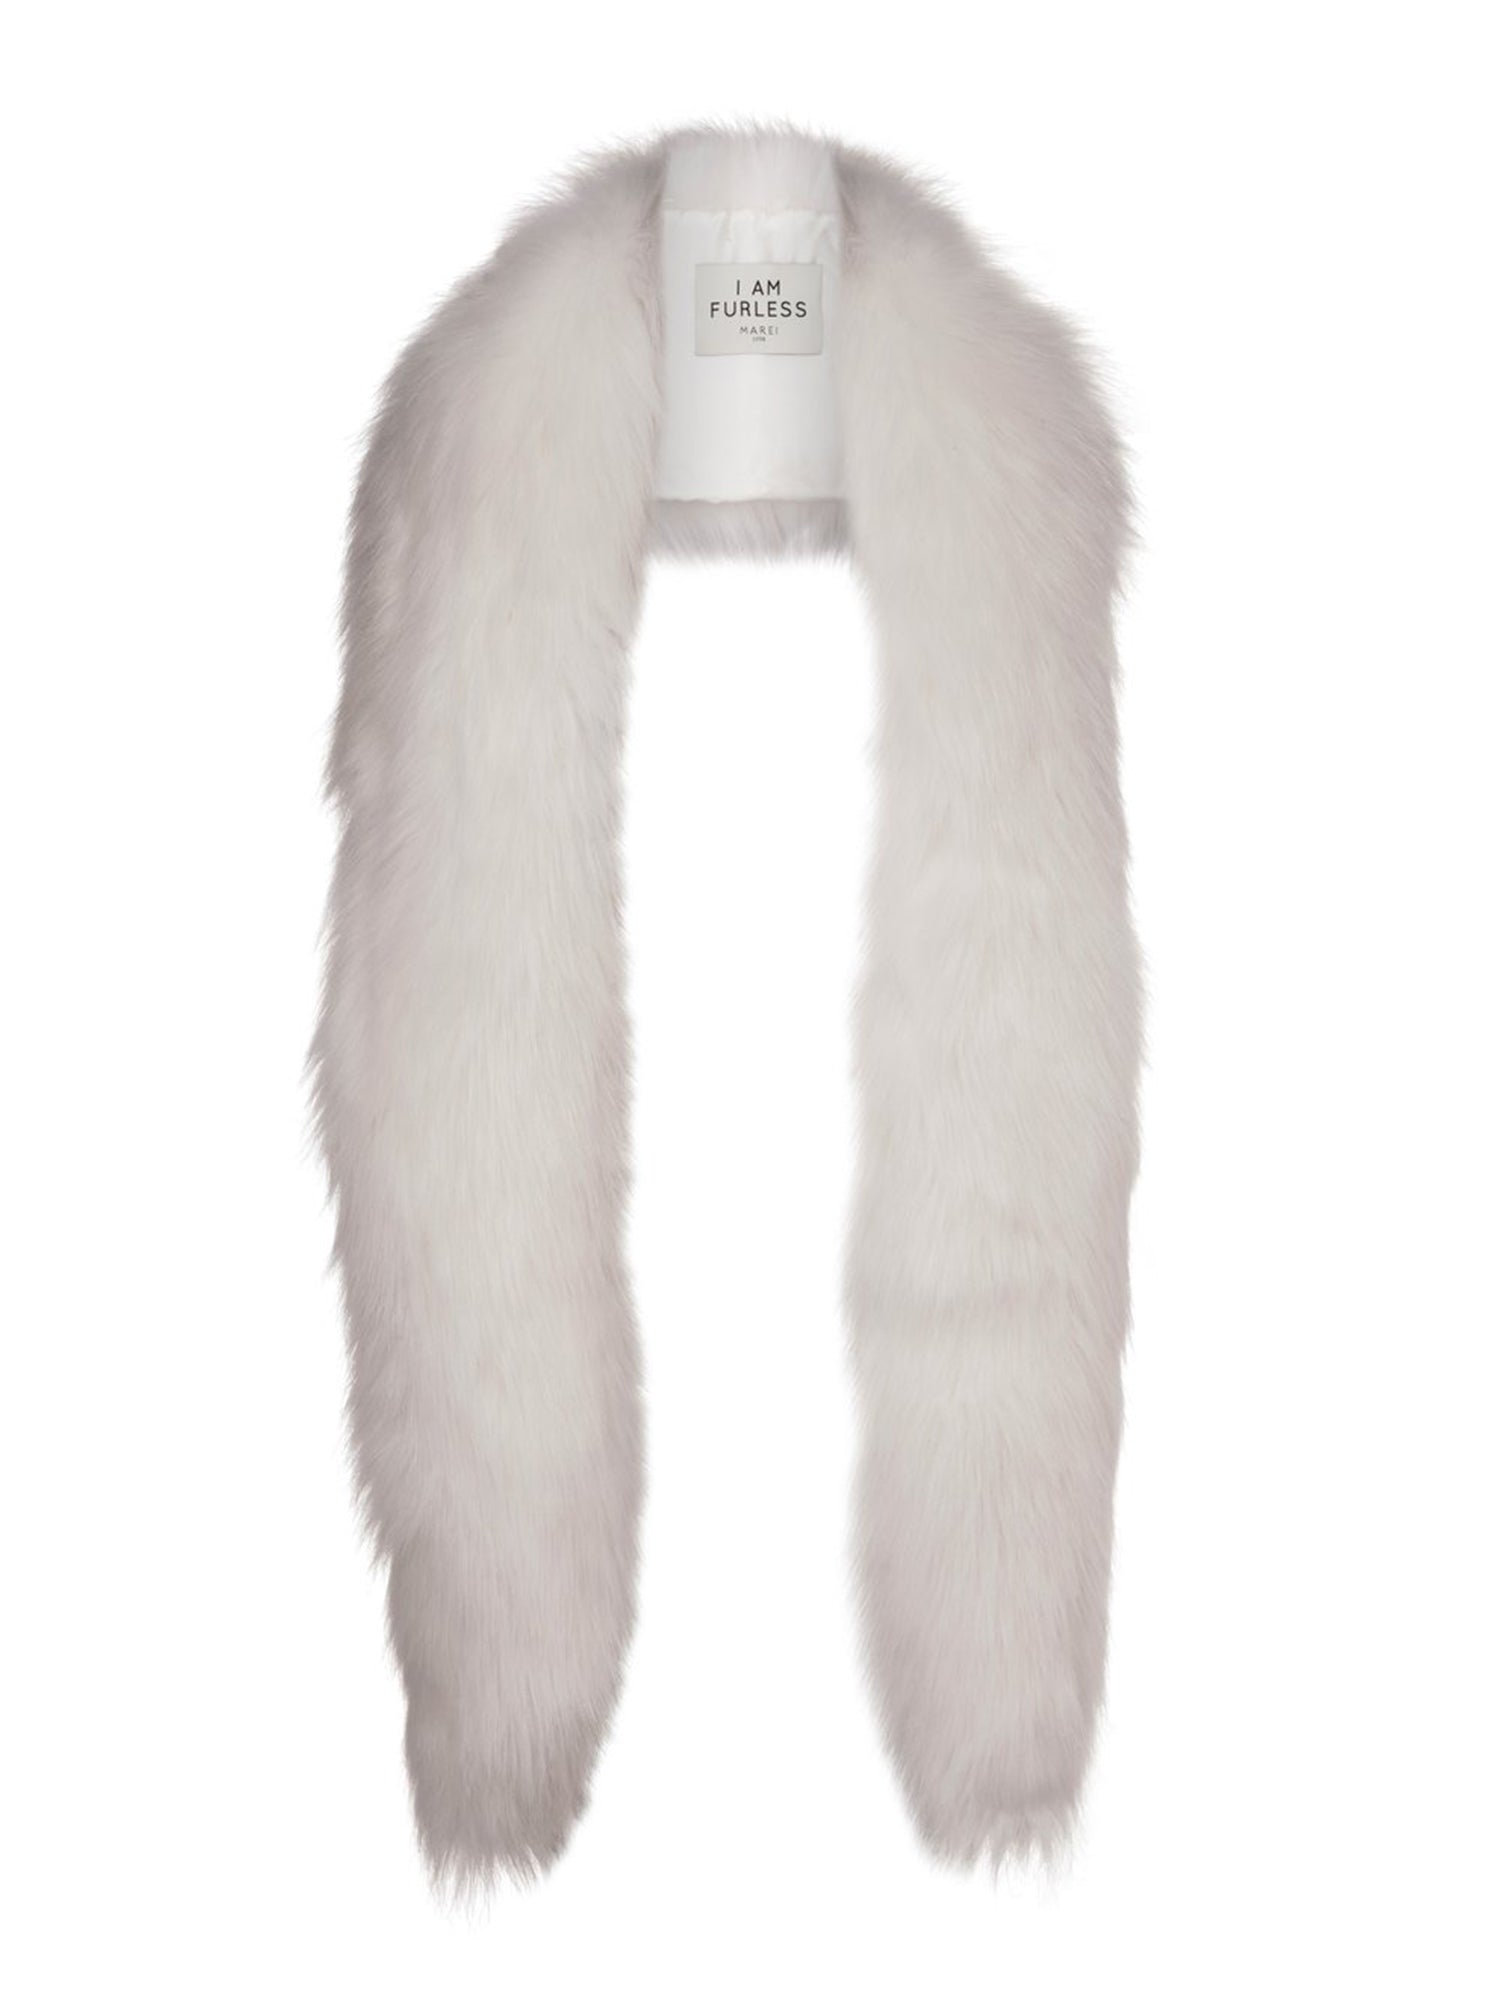 A Packshot Of Marei1998's Mimosa Faux Fur Scarf In White Color. Made From Plush Faux Fur, It Features Lush Longhaired Texture And Wide Silhouette Design That Is Incredibly Soft And Comfortable. Front View.